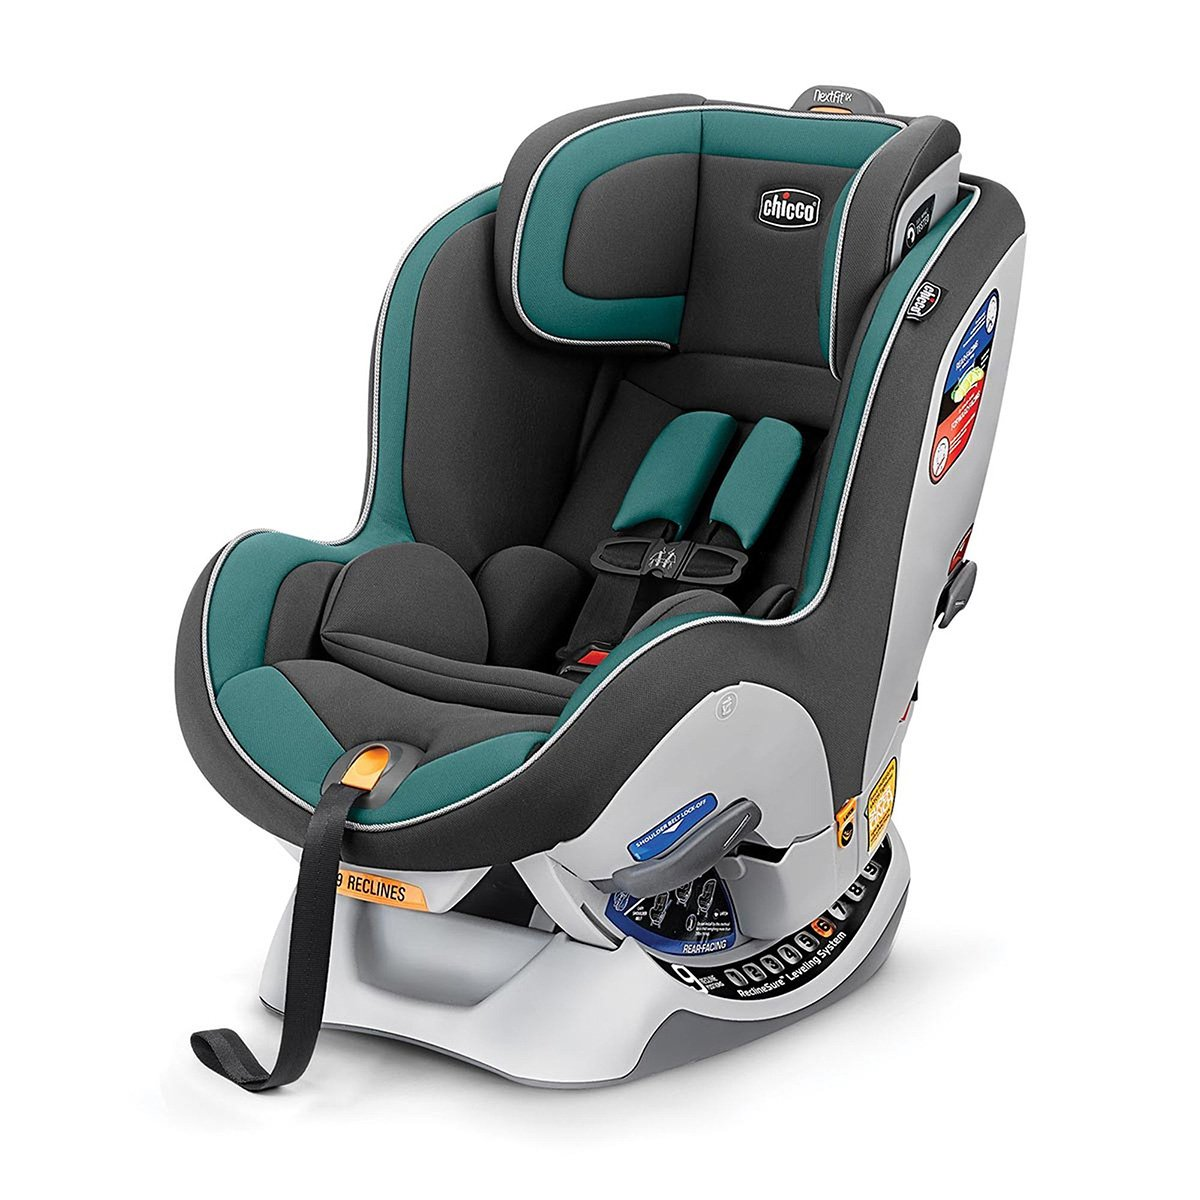 autoasiento nextfit ix baby car seat eucalyptus chicco sears com mx me entiende. Black Bedroom Furniture Sets. Home Design Ideas